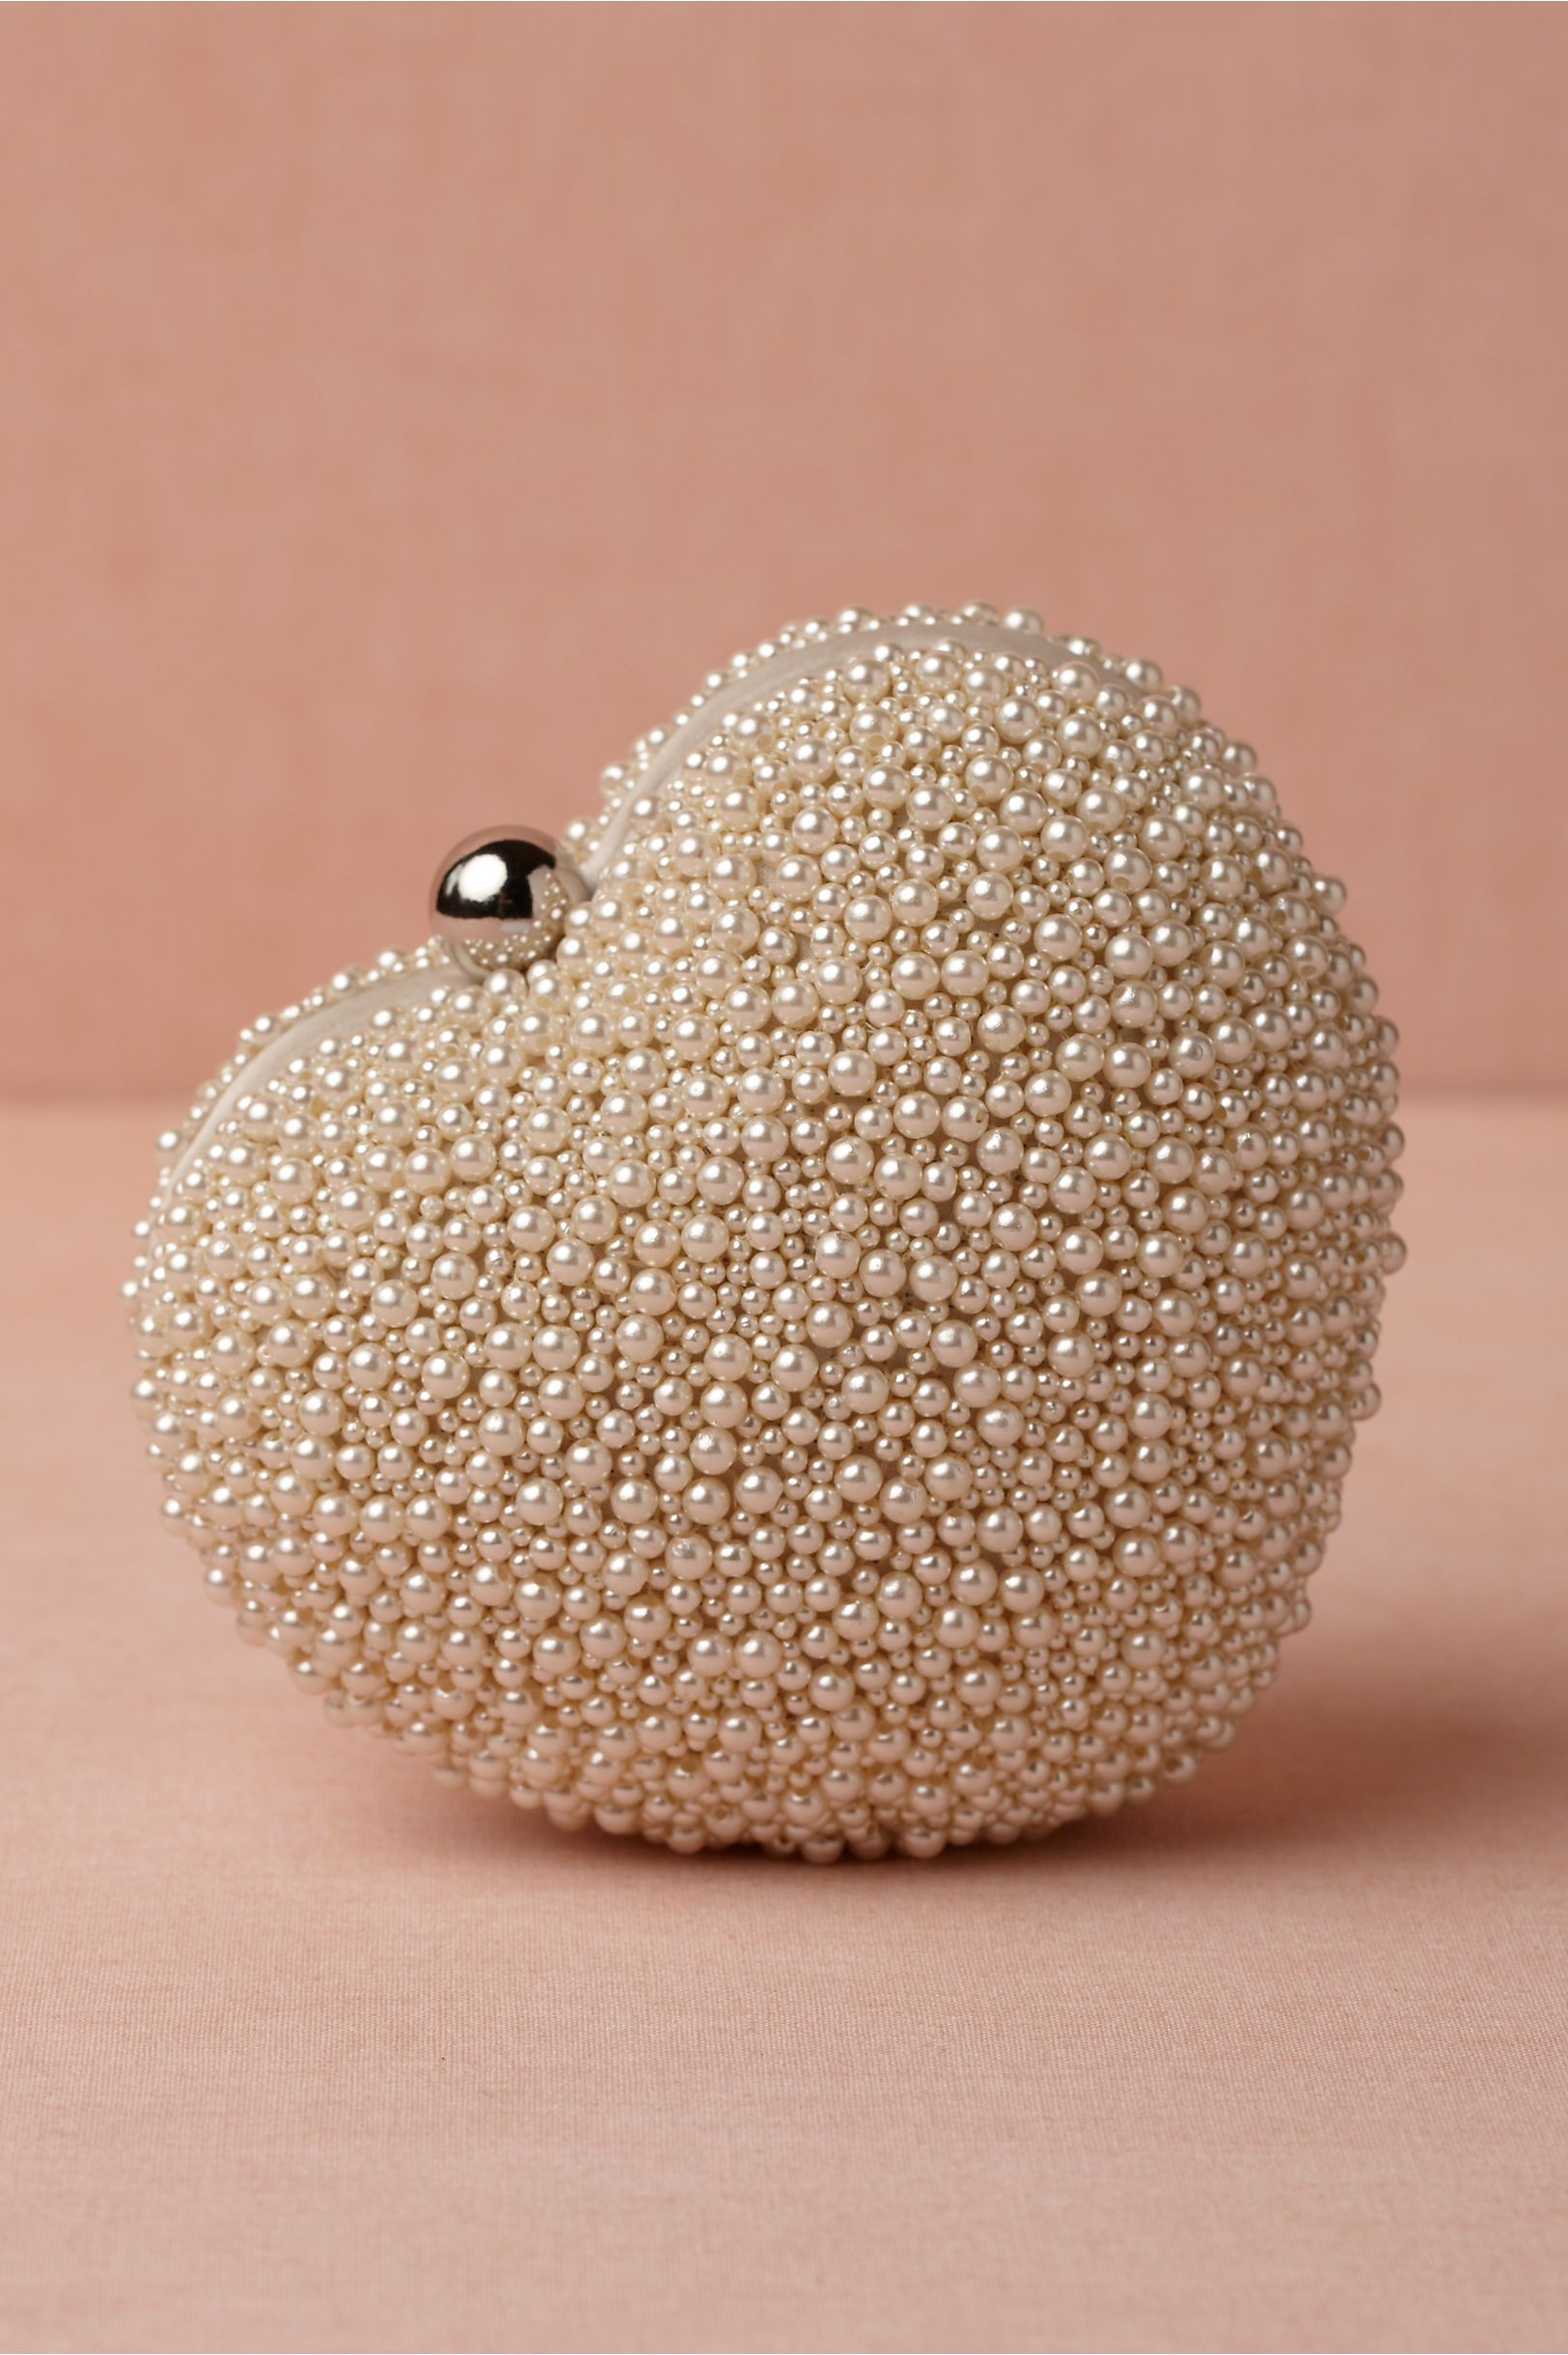 383cc3d4bd3 inspiration - Effervescence Clutch - great use of extra glass pearls.